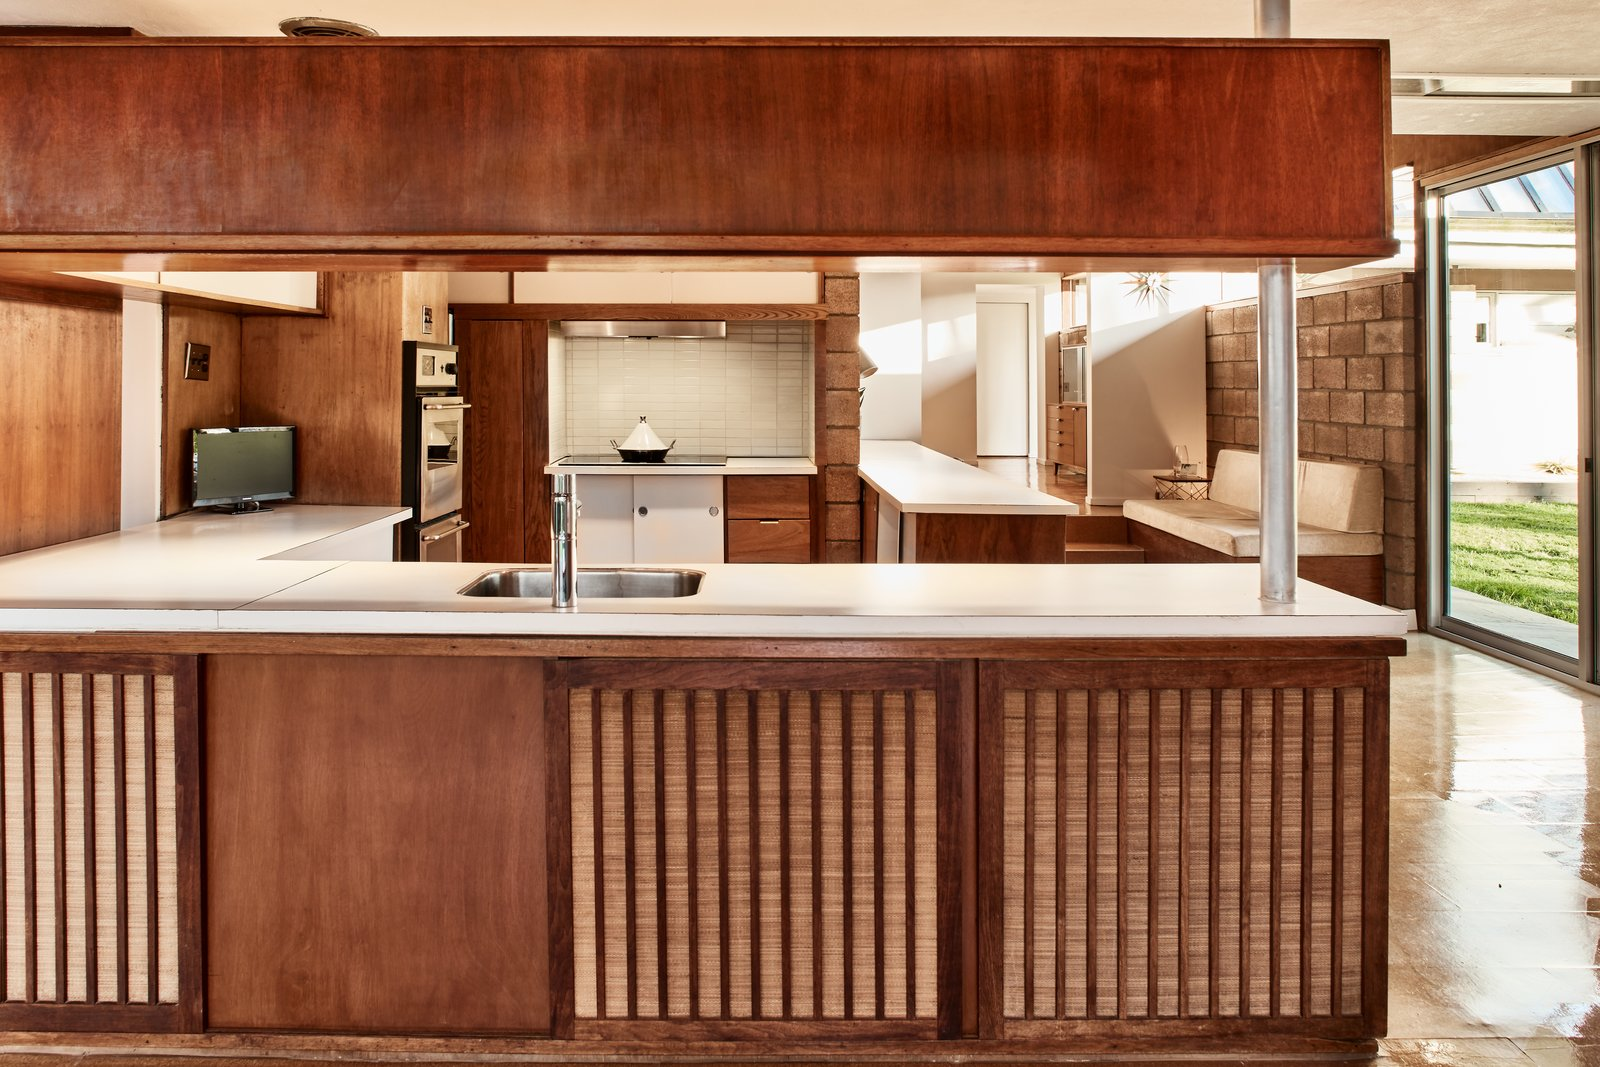 Kitchen and Wood Cabinet  Photo 6 of 13 in The Stunningly Restored Hassrick Residence by Richard Neutra Hits the Market at $2.2M